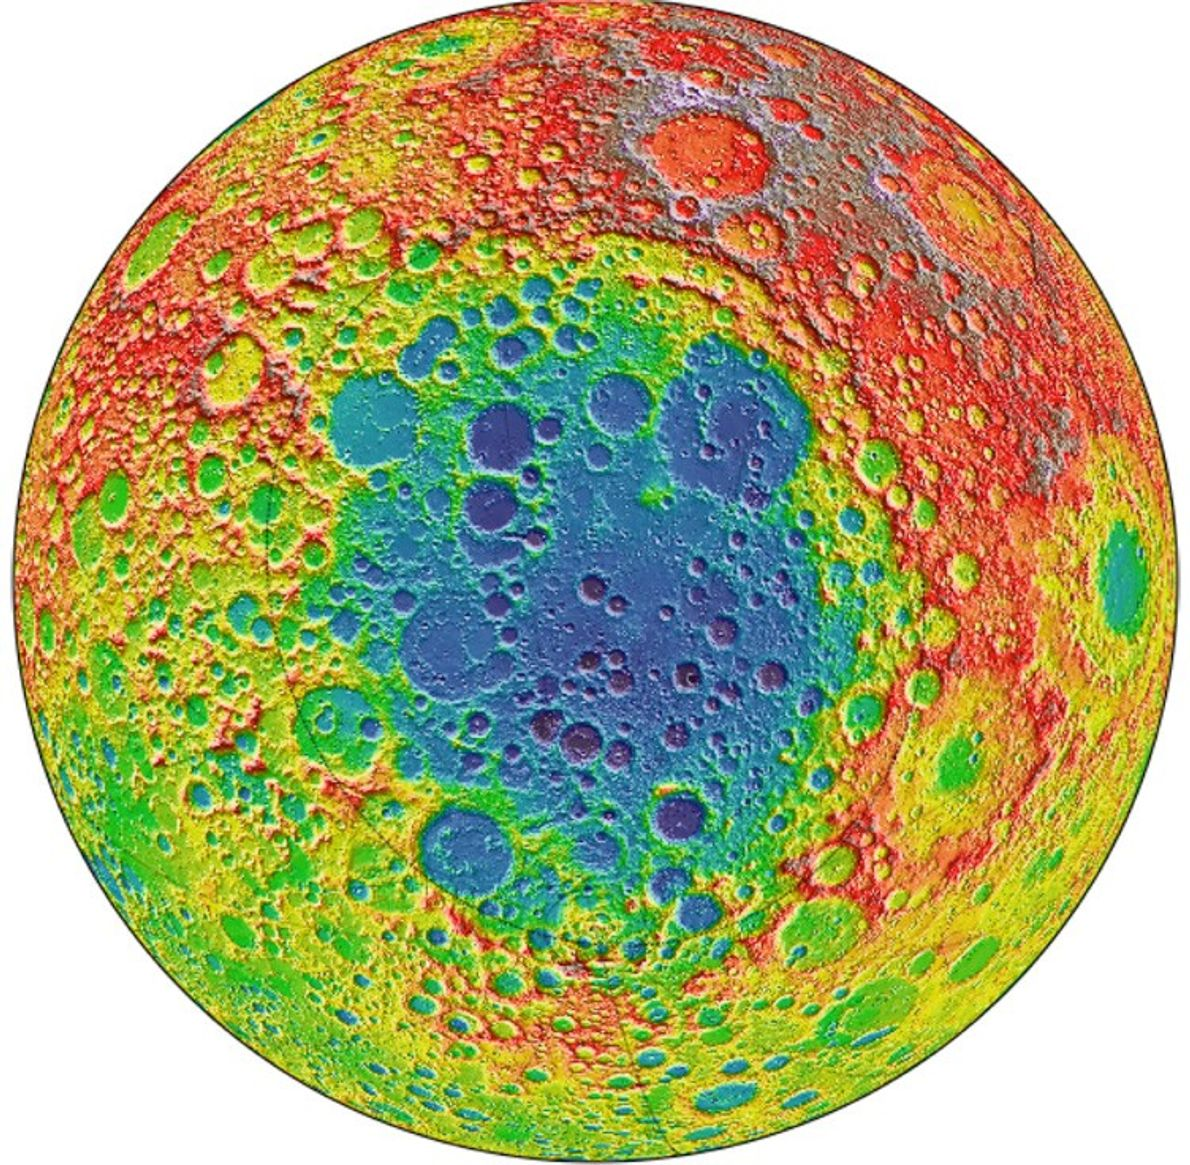 Chinese rover finds strange rocks that may come from deep inside the moon